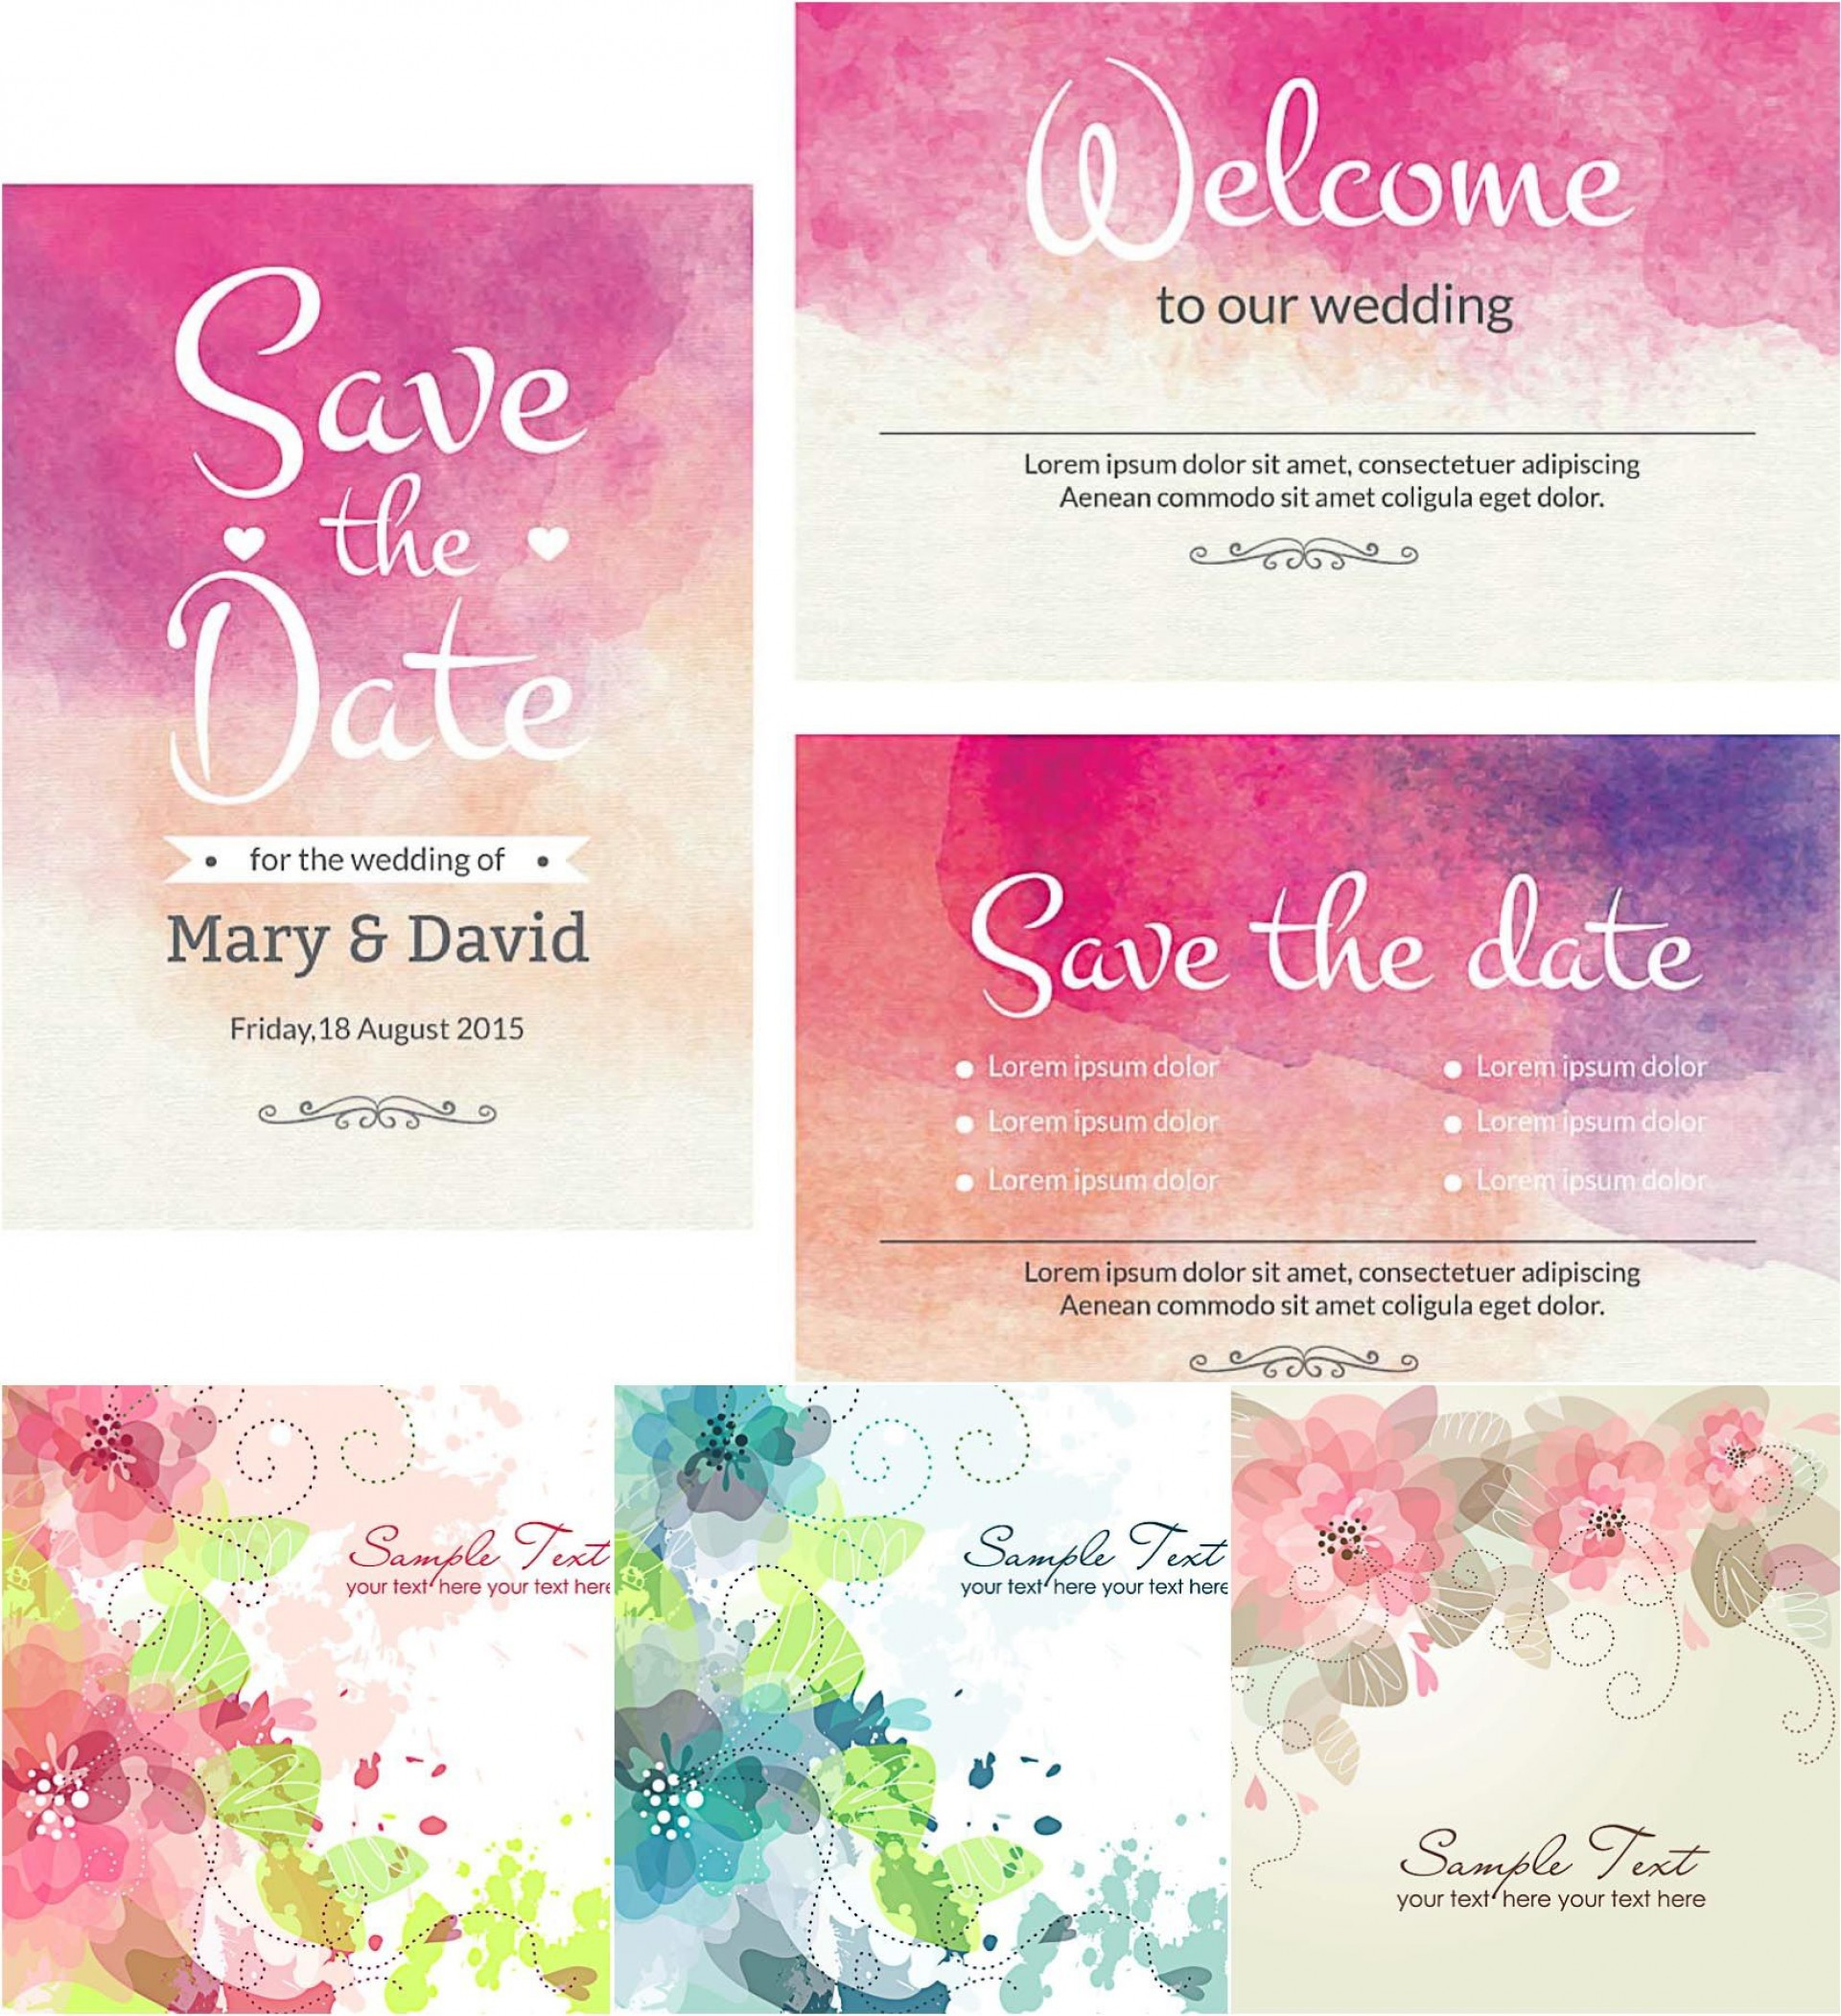 008 Amazing Free Download Invitation Card Design Software Highest Clarity  Full Version Wedding For Pc1920